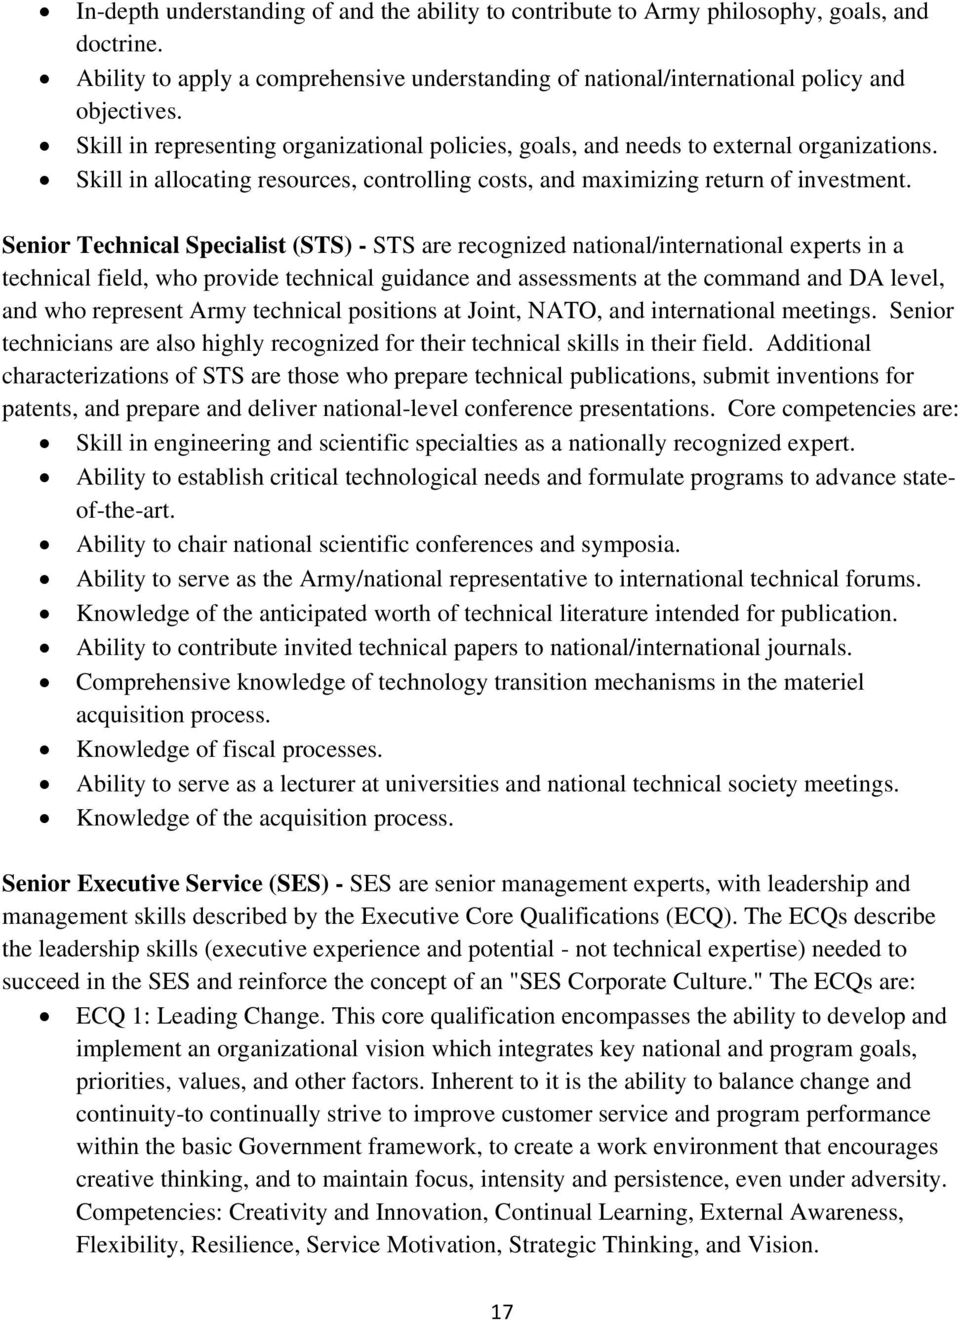 Senior Technical Specialist (STS) - STS are recognized national/international experts in a technical field, who provide technical guidance and assessments at the command and DA level, and who